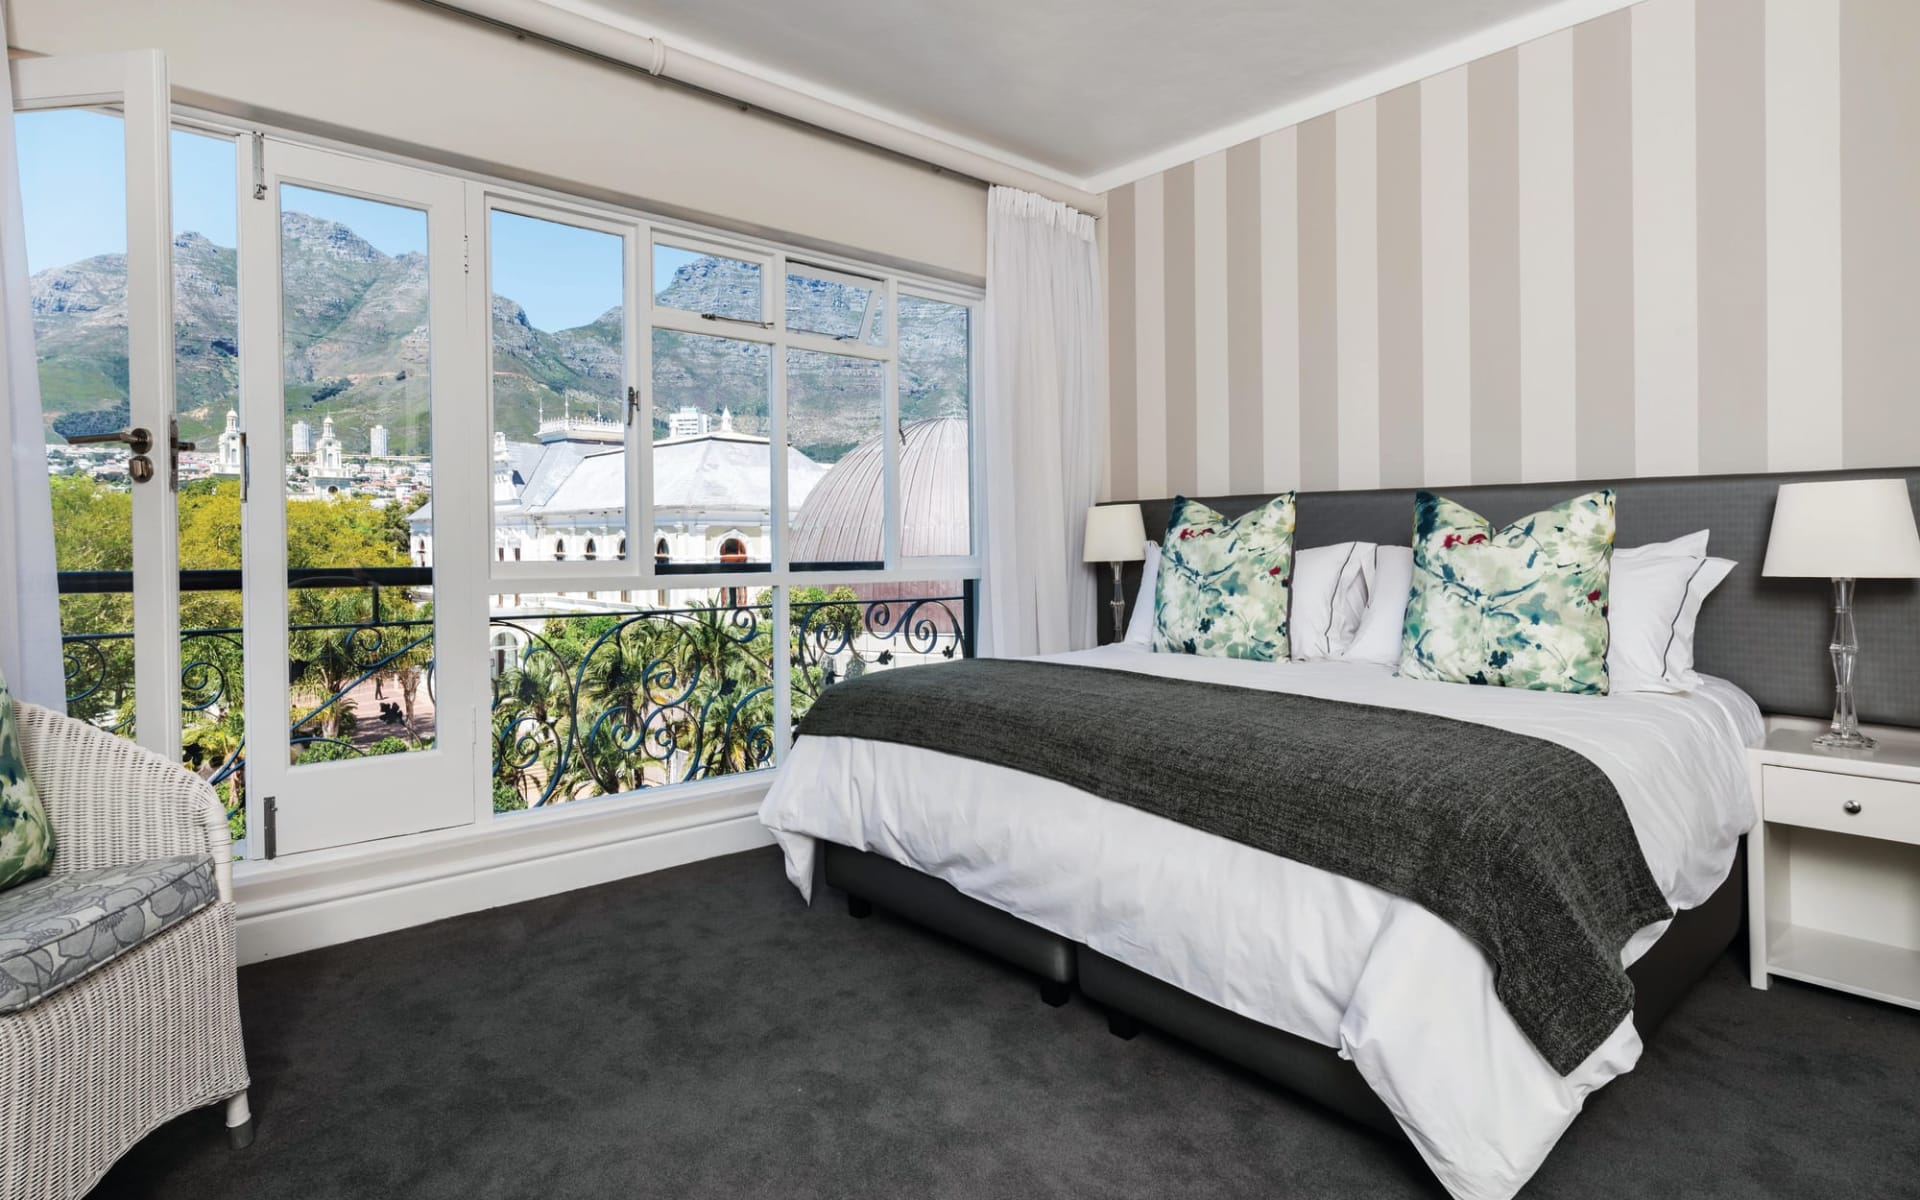 Cape Town Hollow Boutique Hotel in Kapstadt: zimmer Cape Town Hollow - Zimmer mit Bett und Bergblick